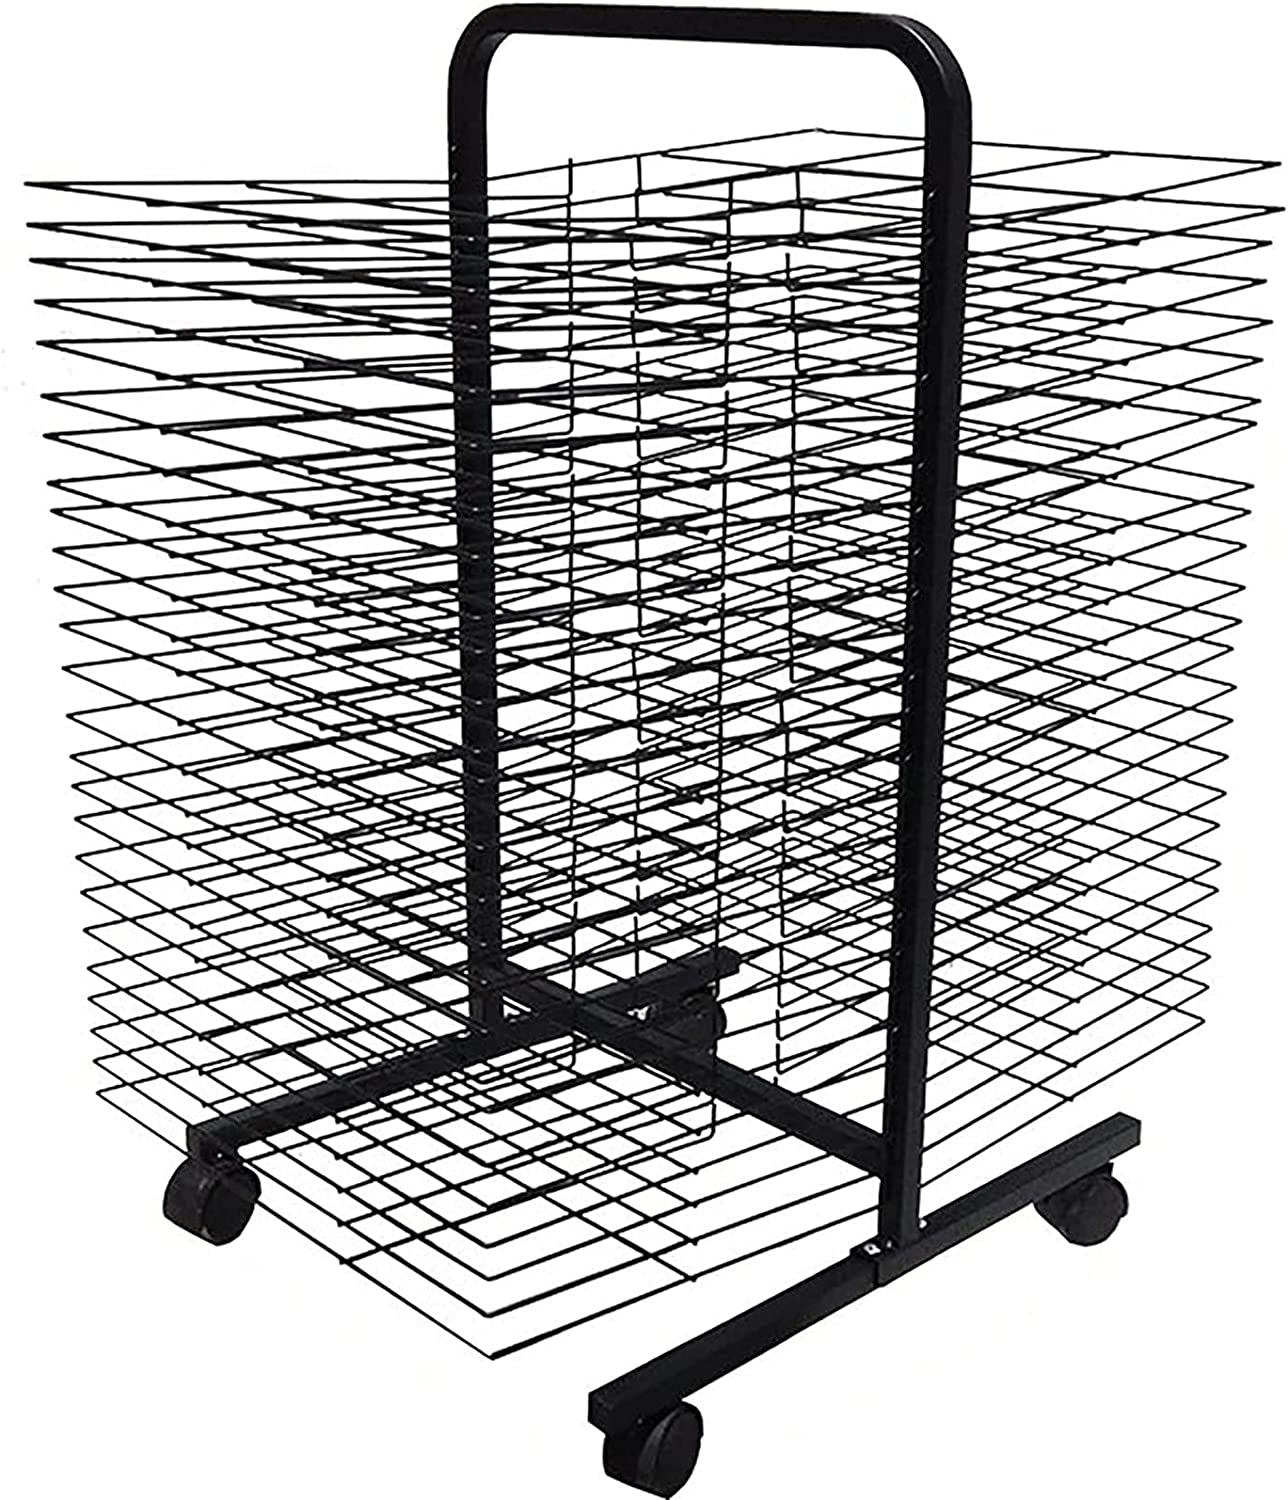 Luxury YSCMX Drying Rack OFFicial shop Back-to-Back R Art Double-Sided Mobile